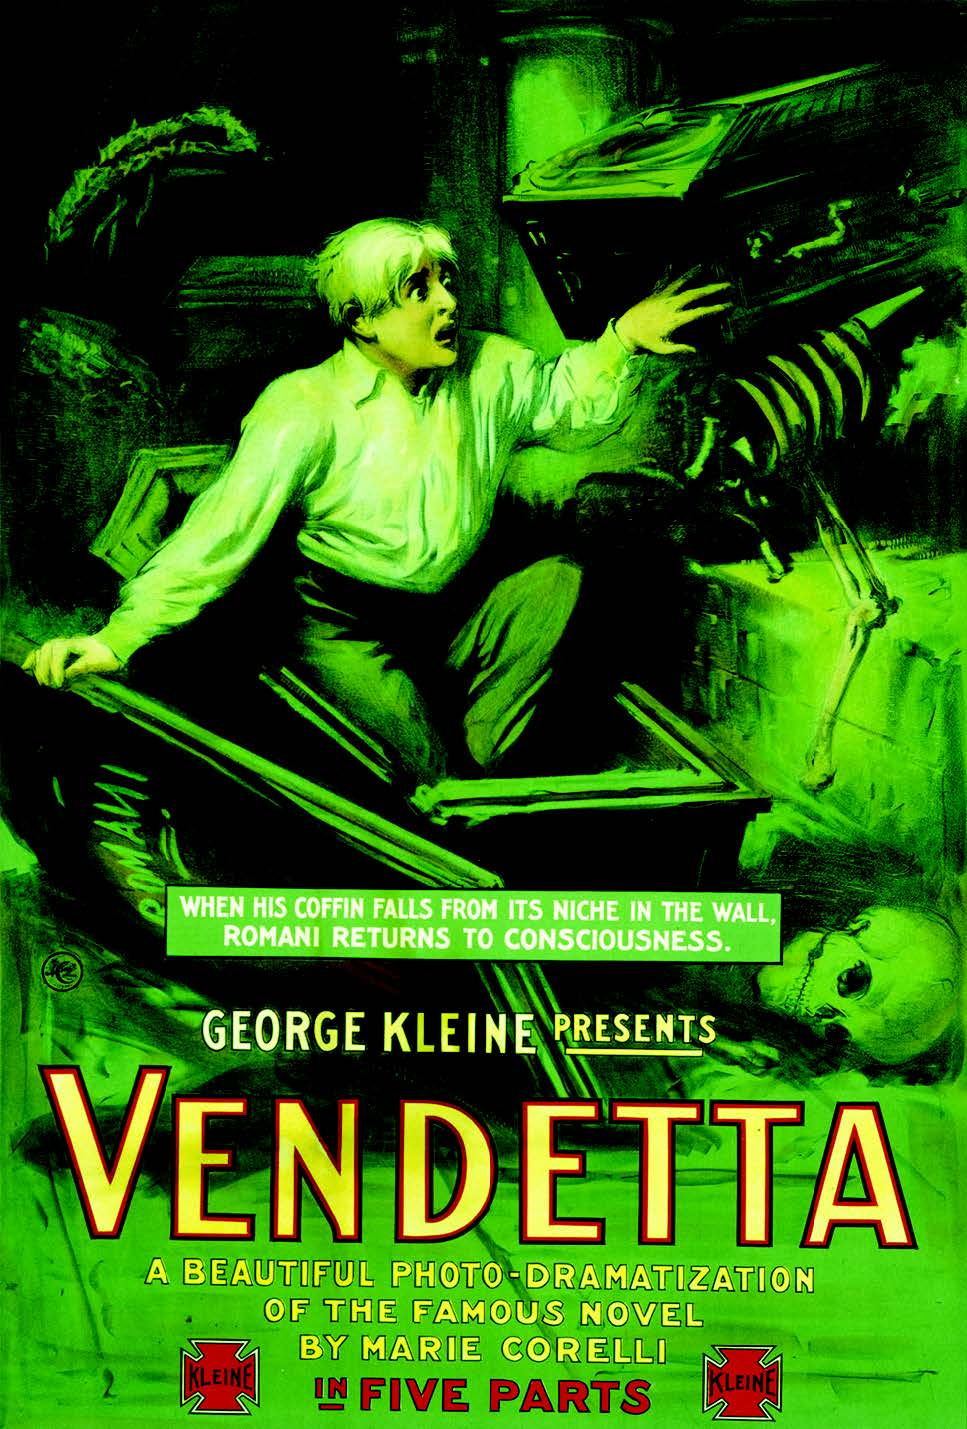 Original movie poster for Vendetta